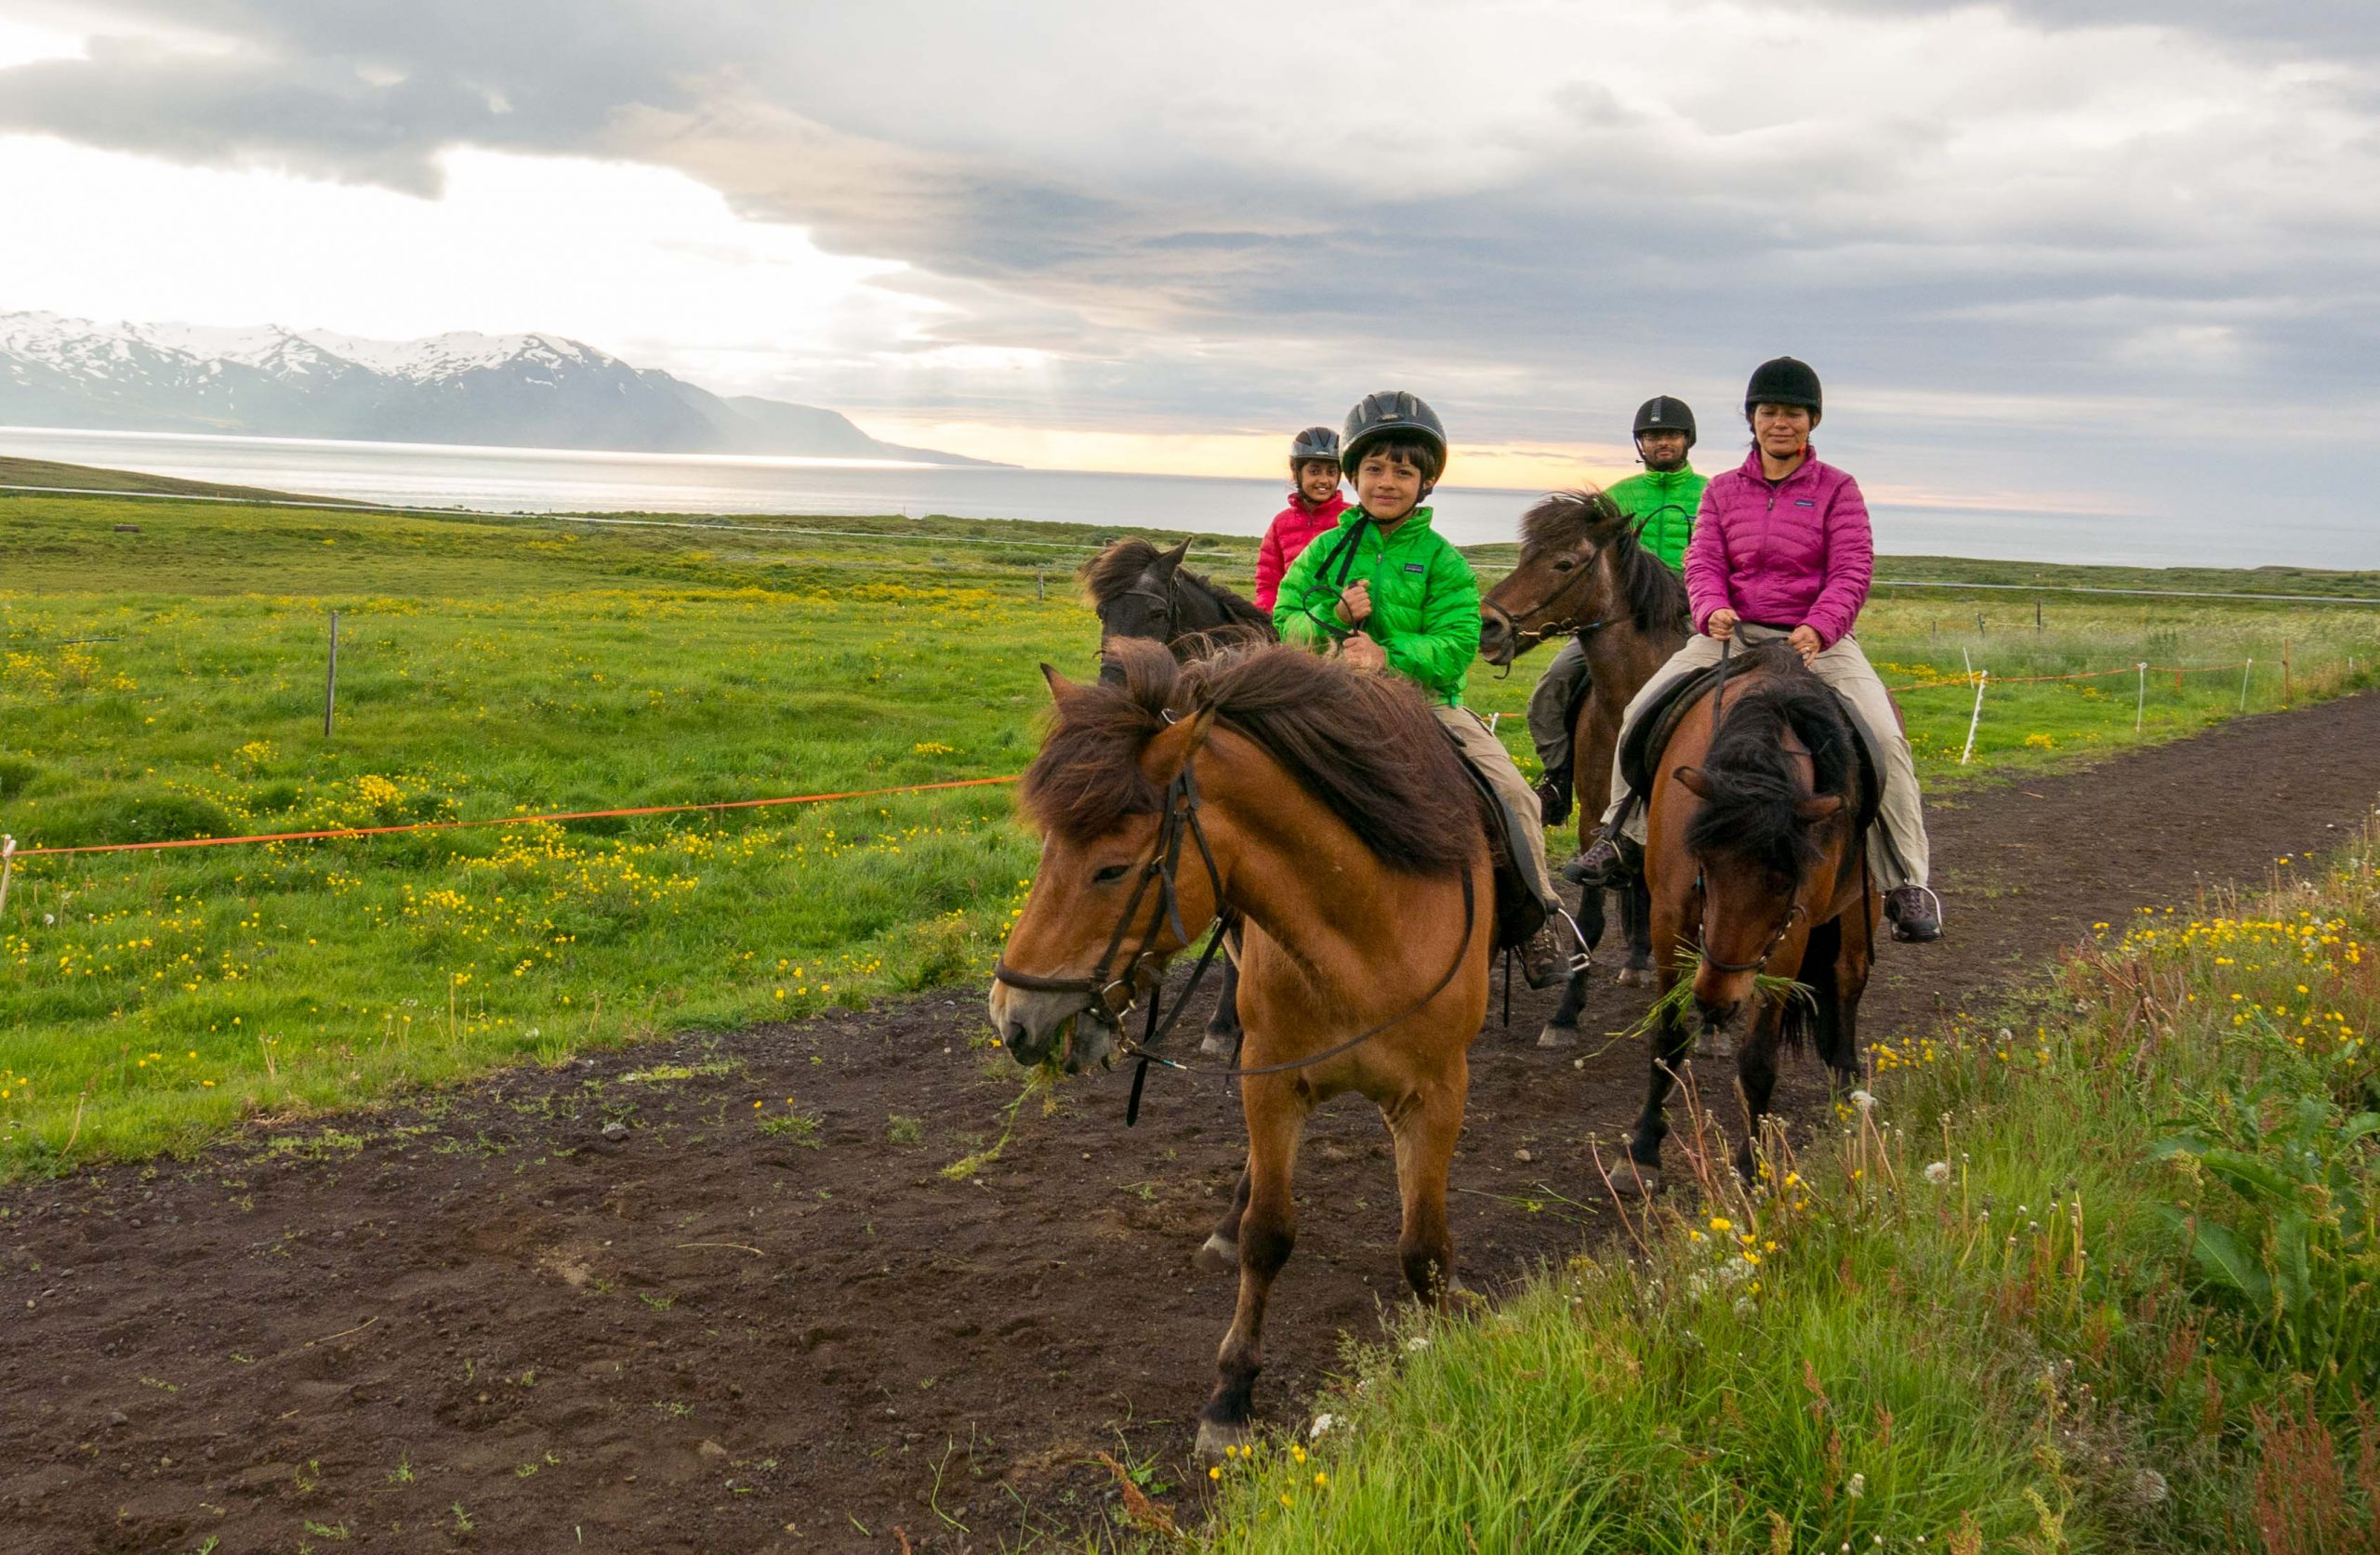 family of four riding icelandic horses on dirt path